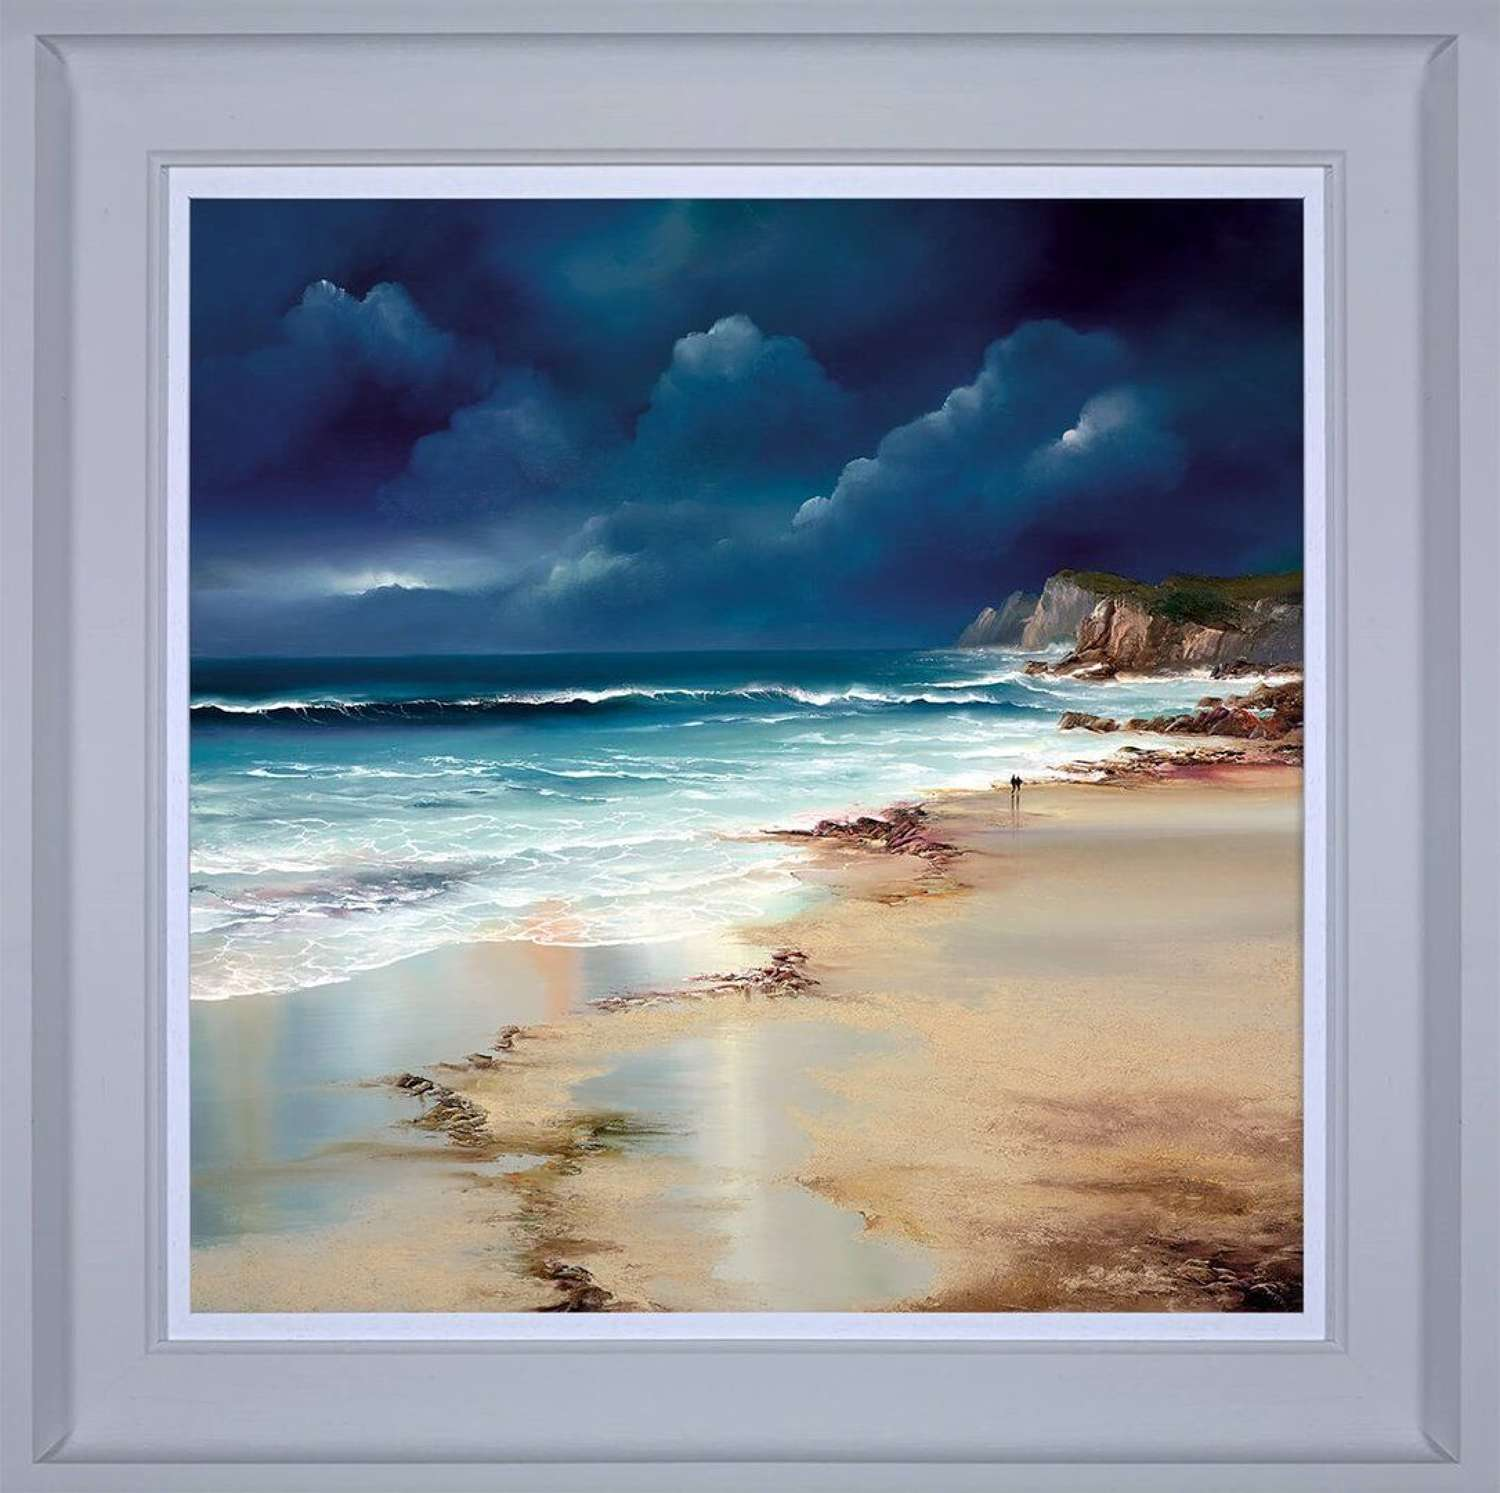 Twilight Walk - Framed Canvas Art Print by Philip Gray